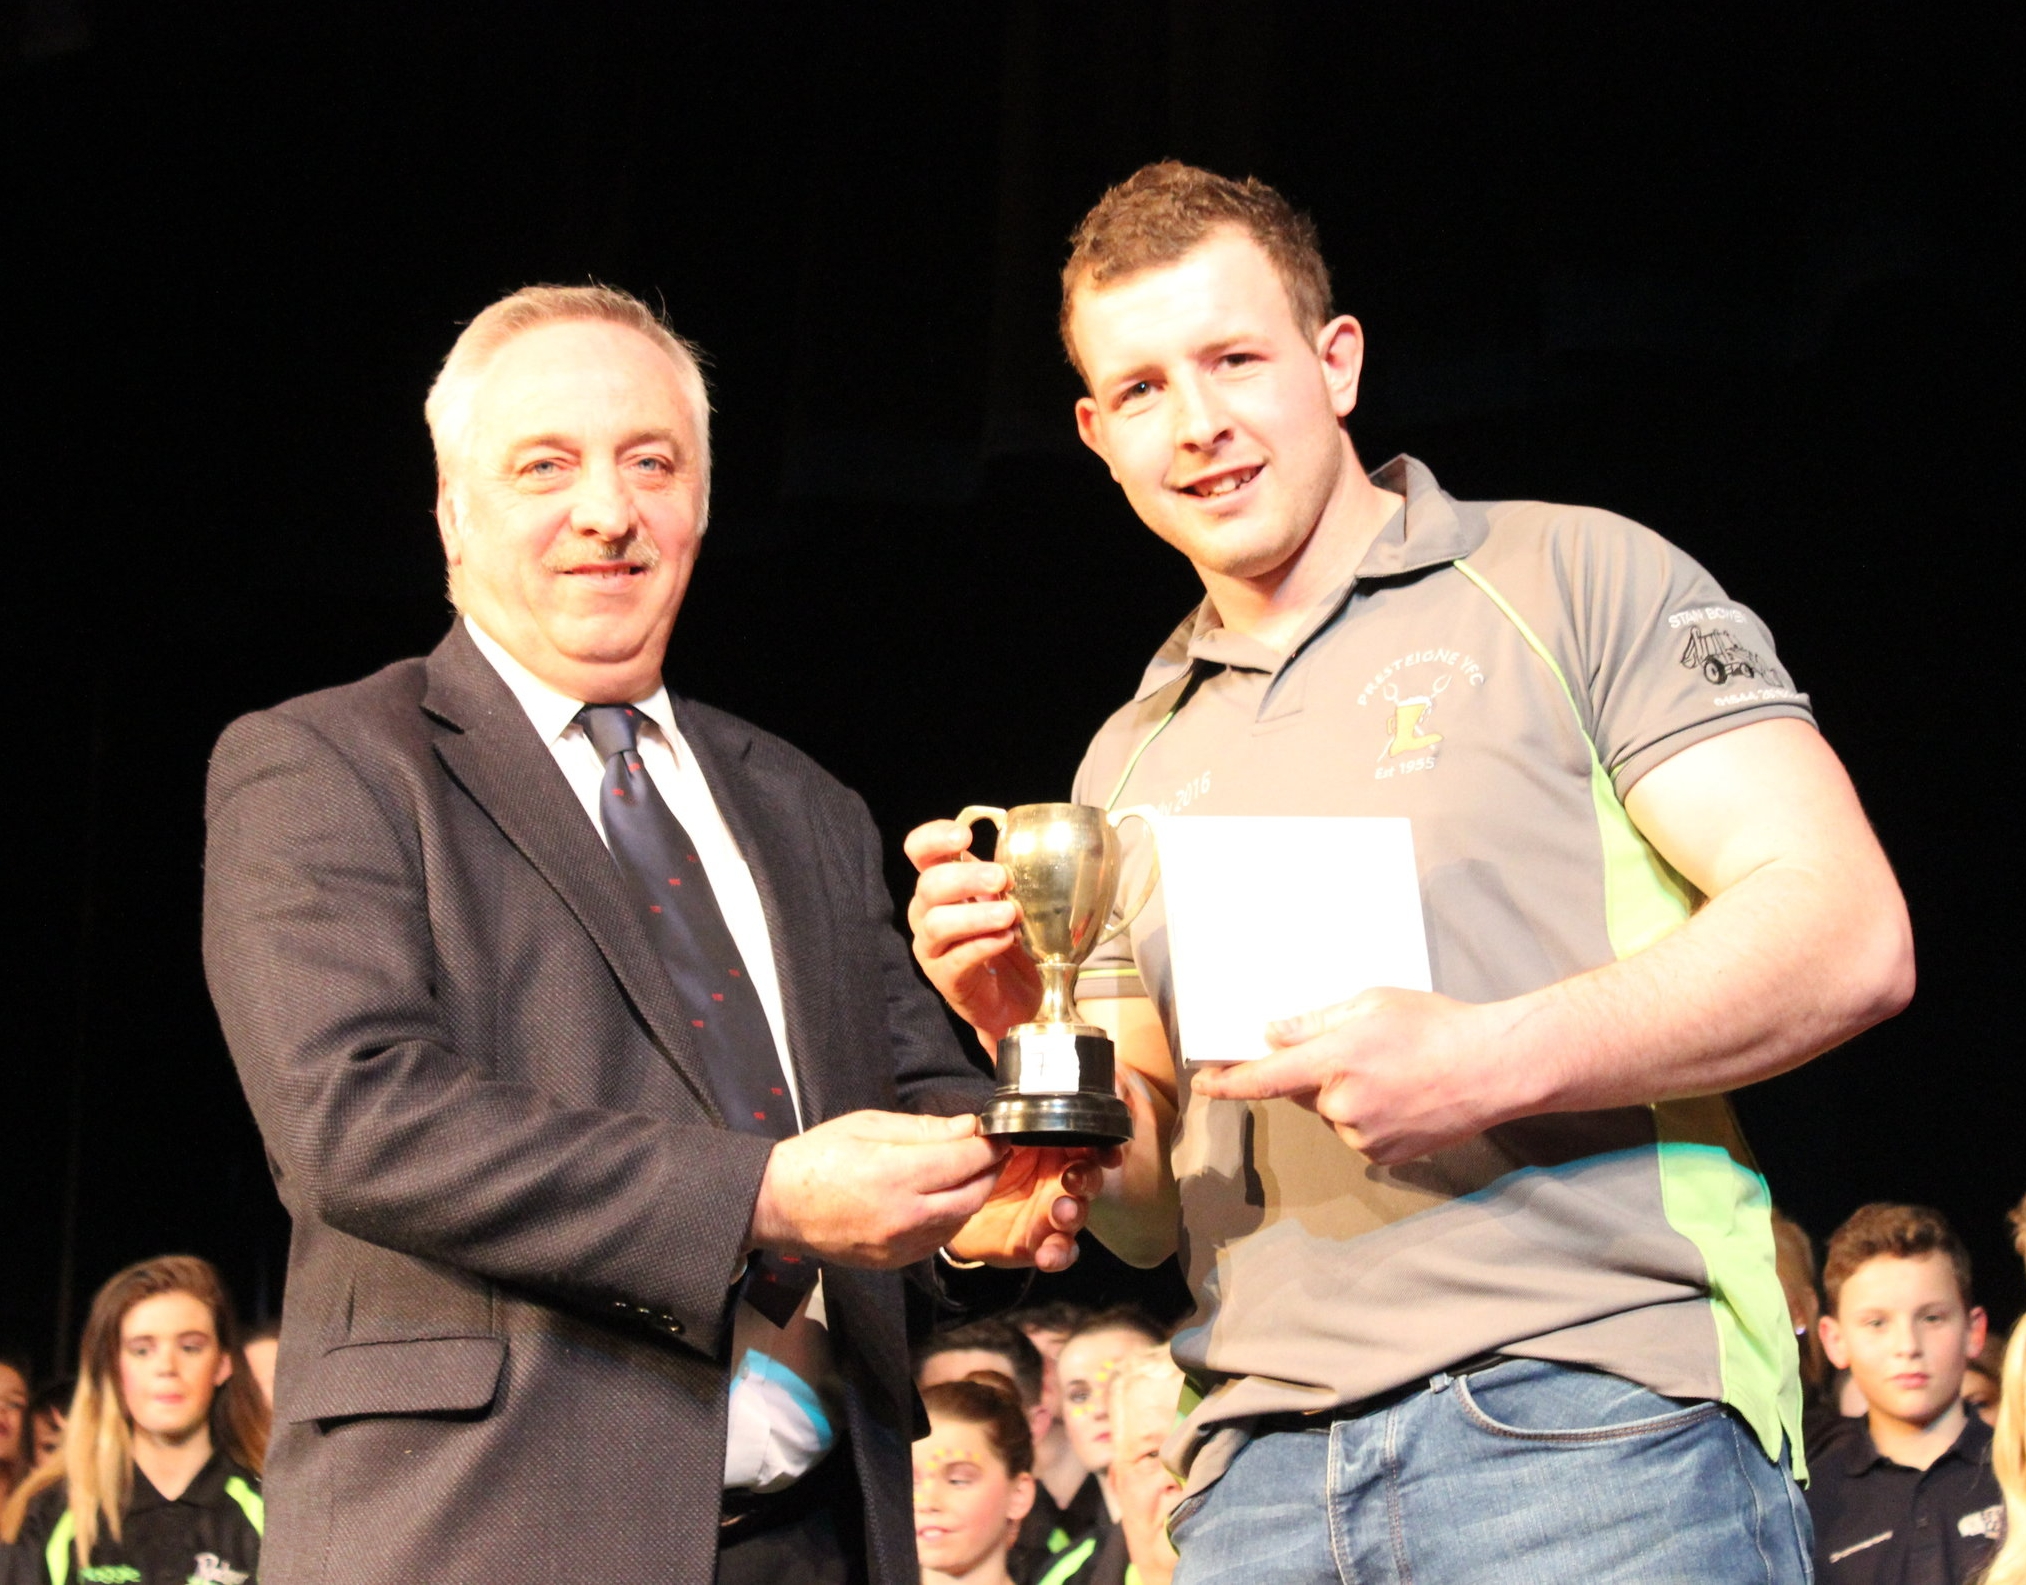 Owen Davies - Presteigne YFC - Mr & Mrs R H Moseley Cup - Best Male Individual Performance